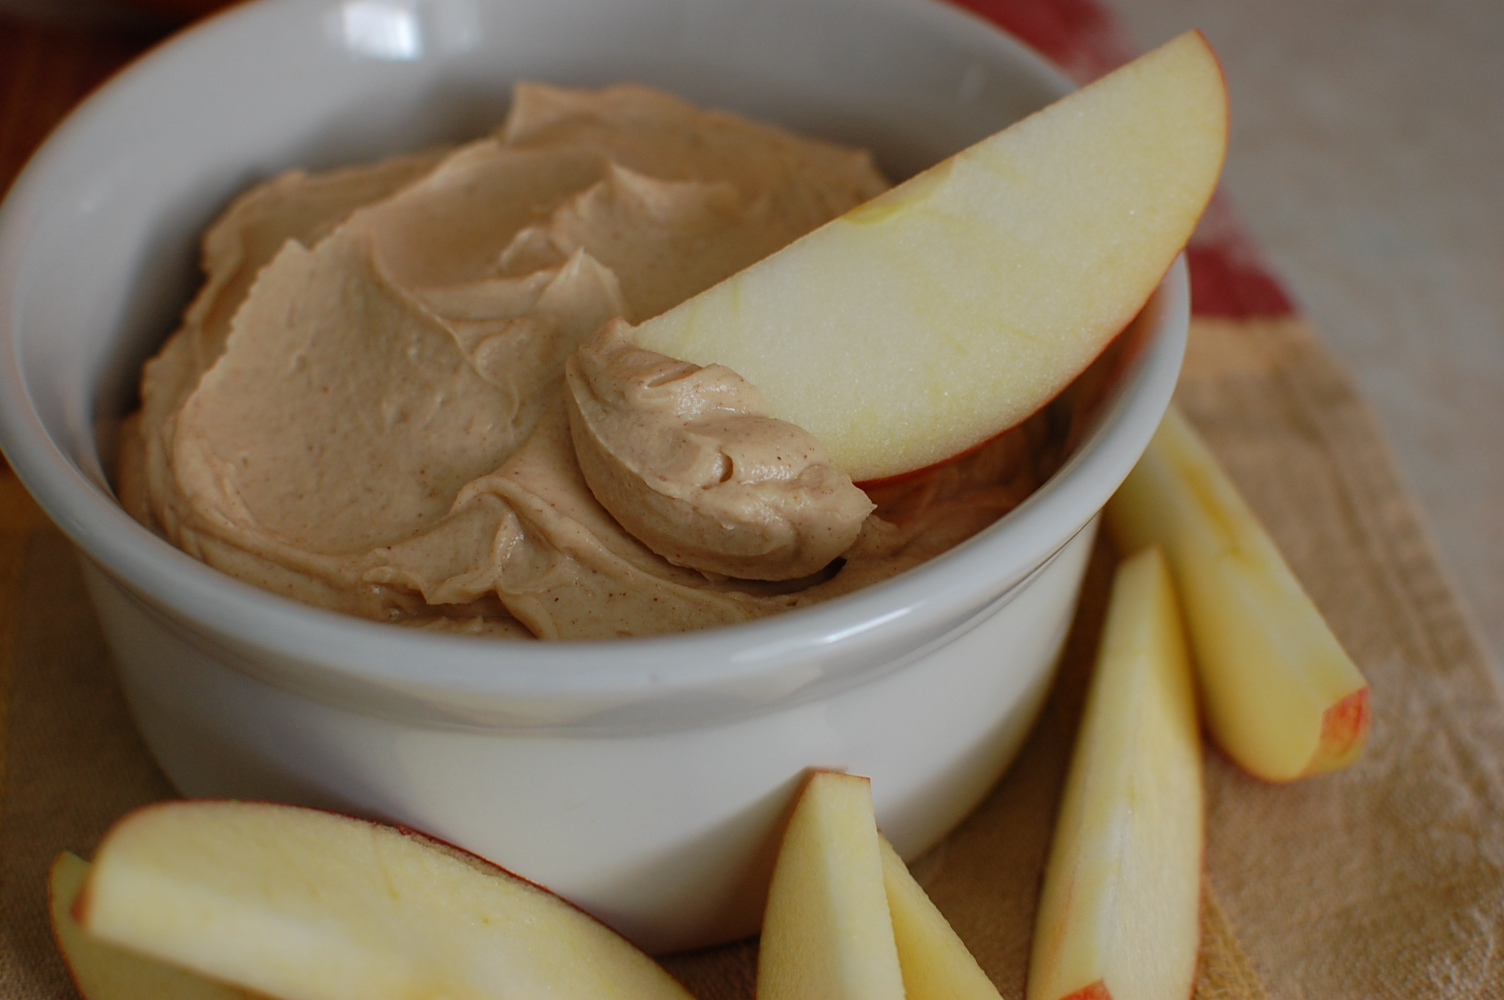 Food, Fun & Life: Peanut Butter Dip